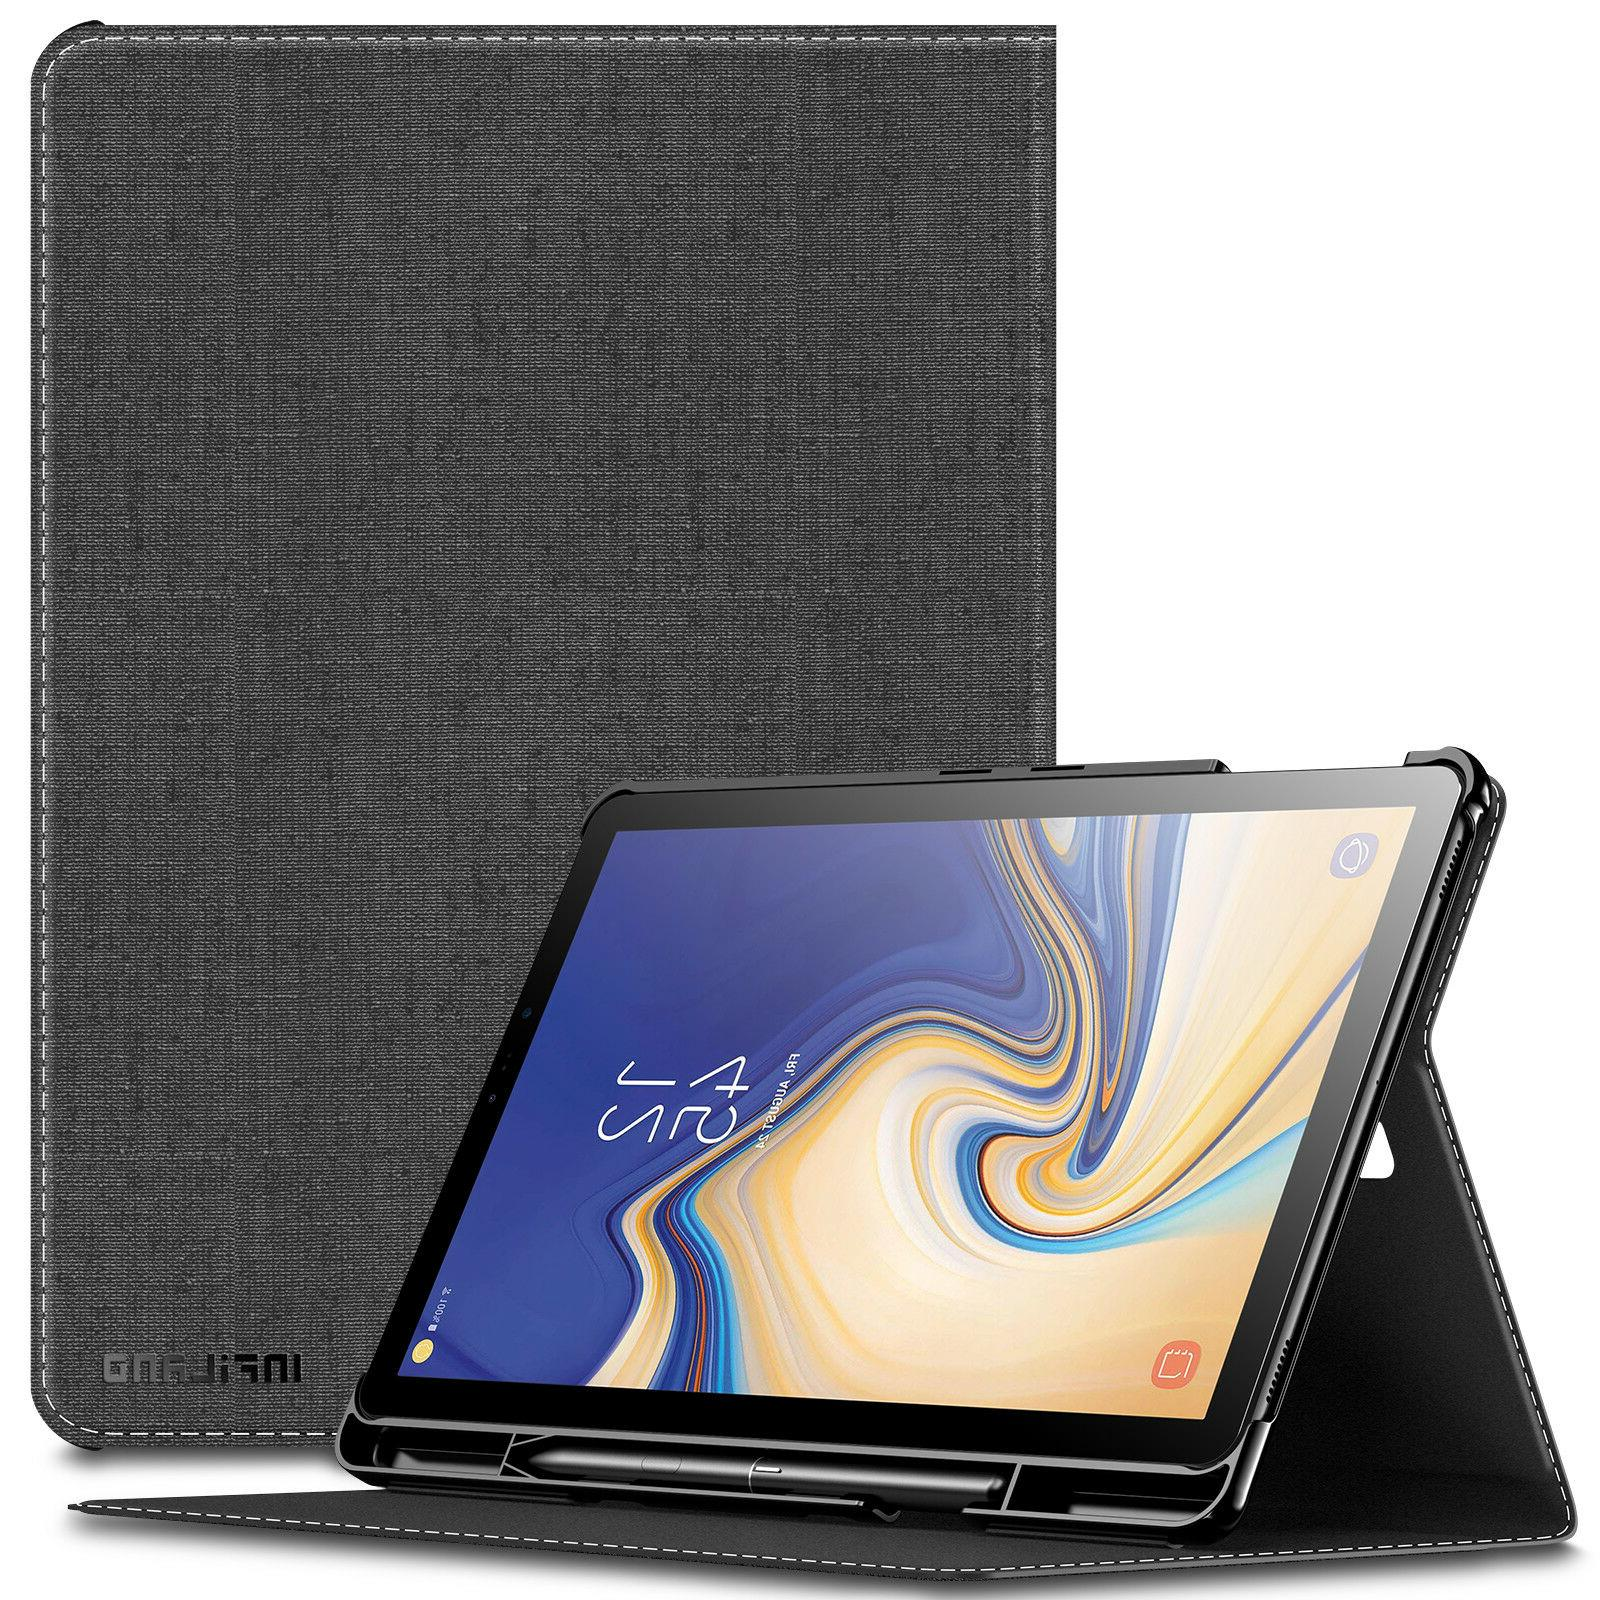 "For Samsung Galaxy Tab S4 10.5"" 2018 Tablet Multi-Angle View"